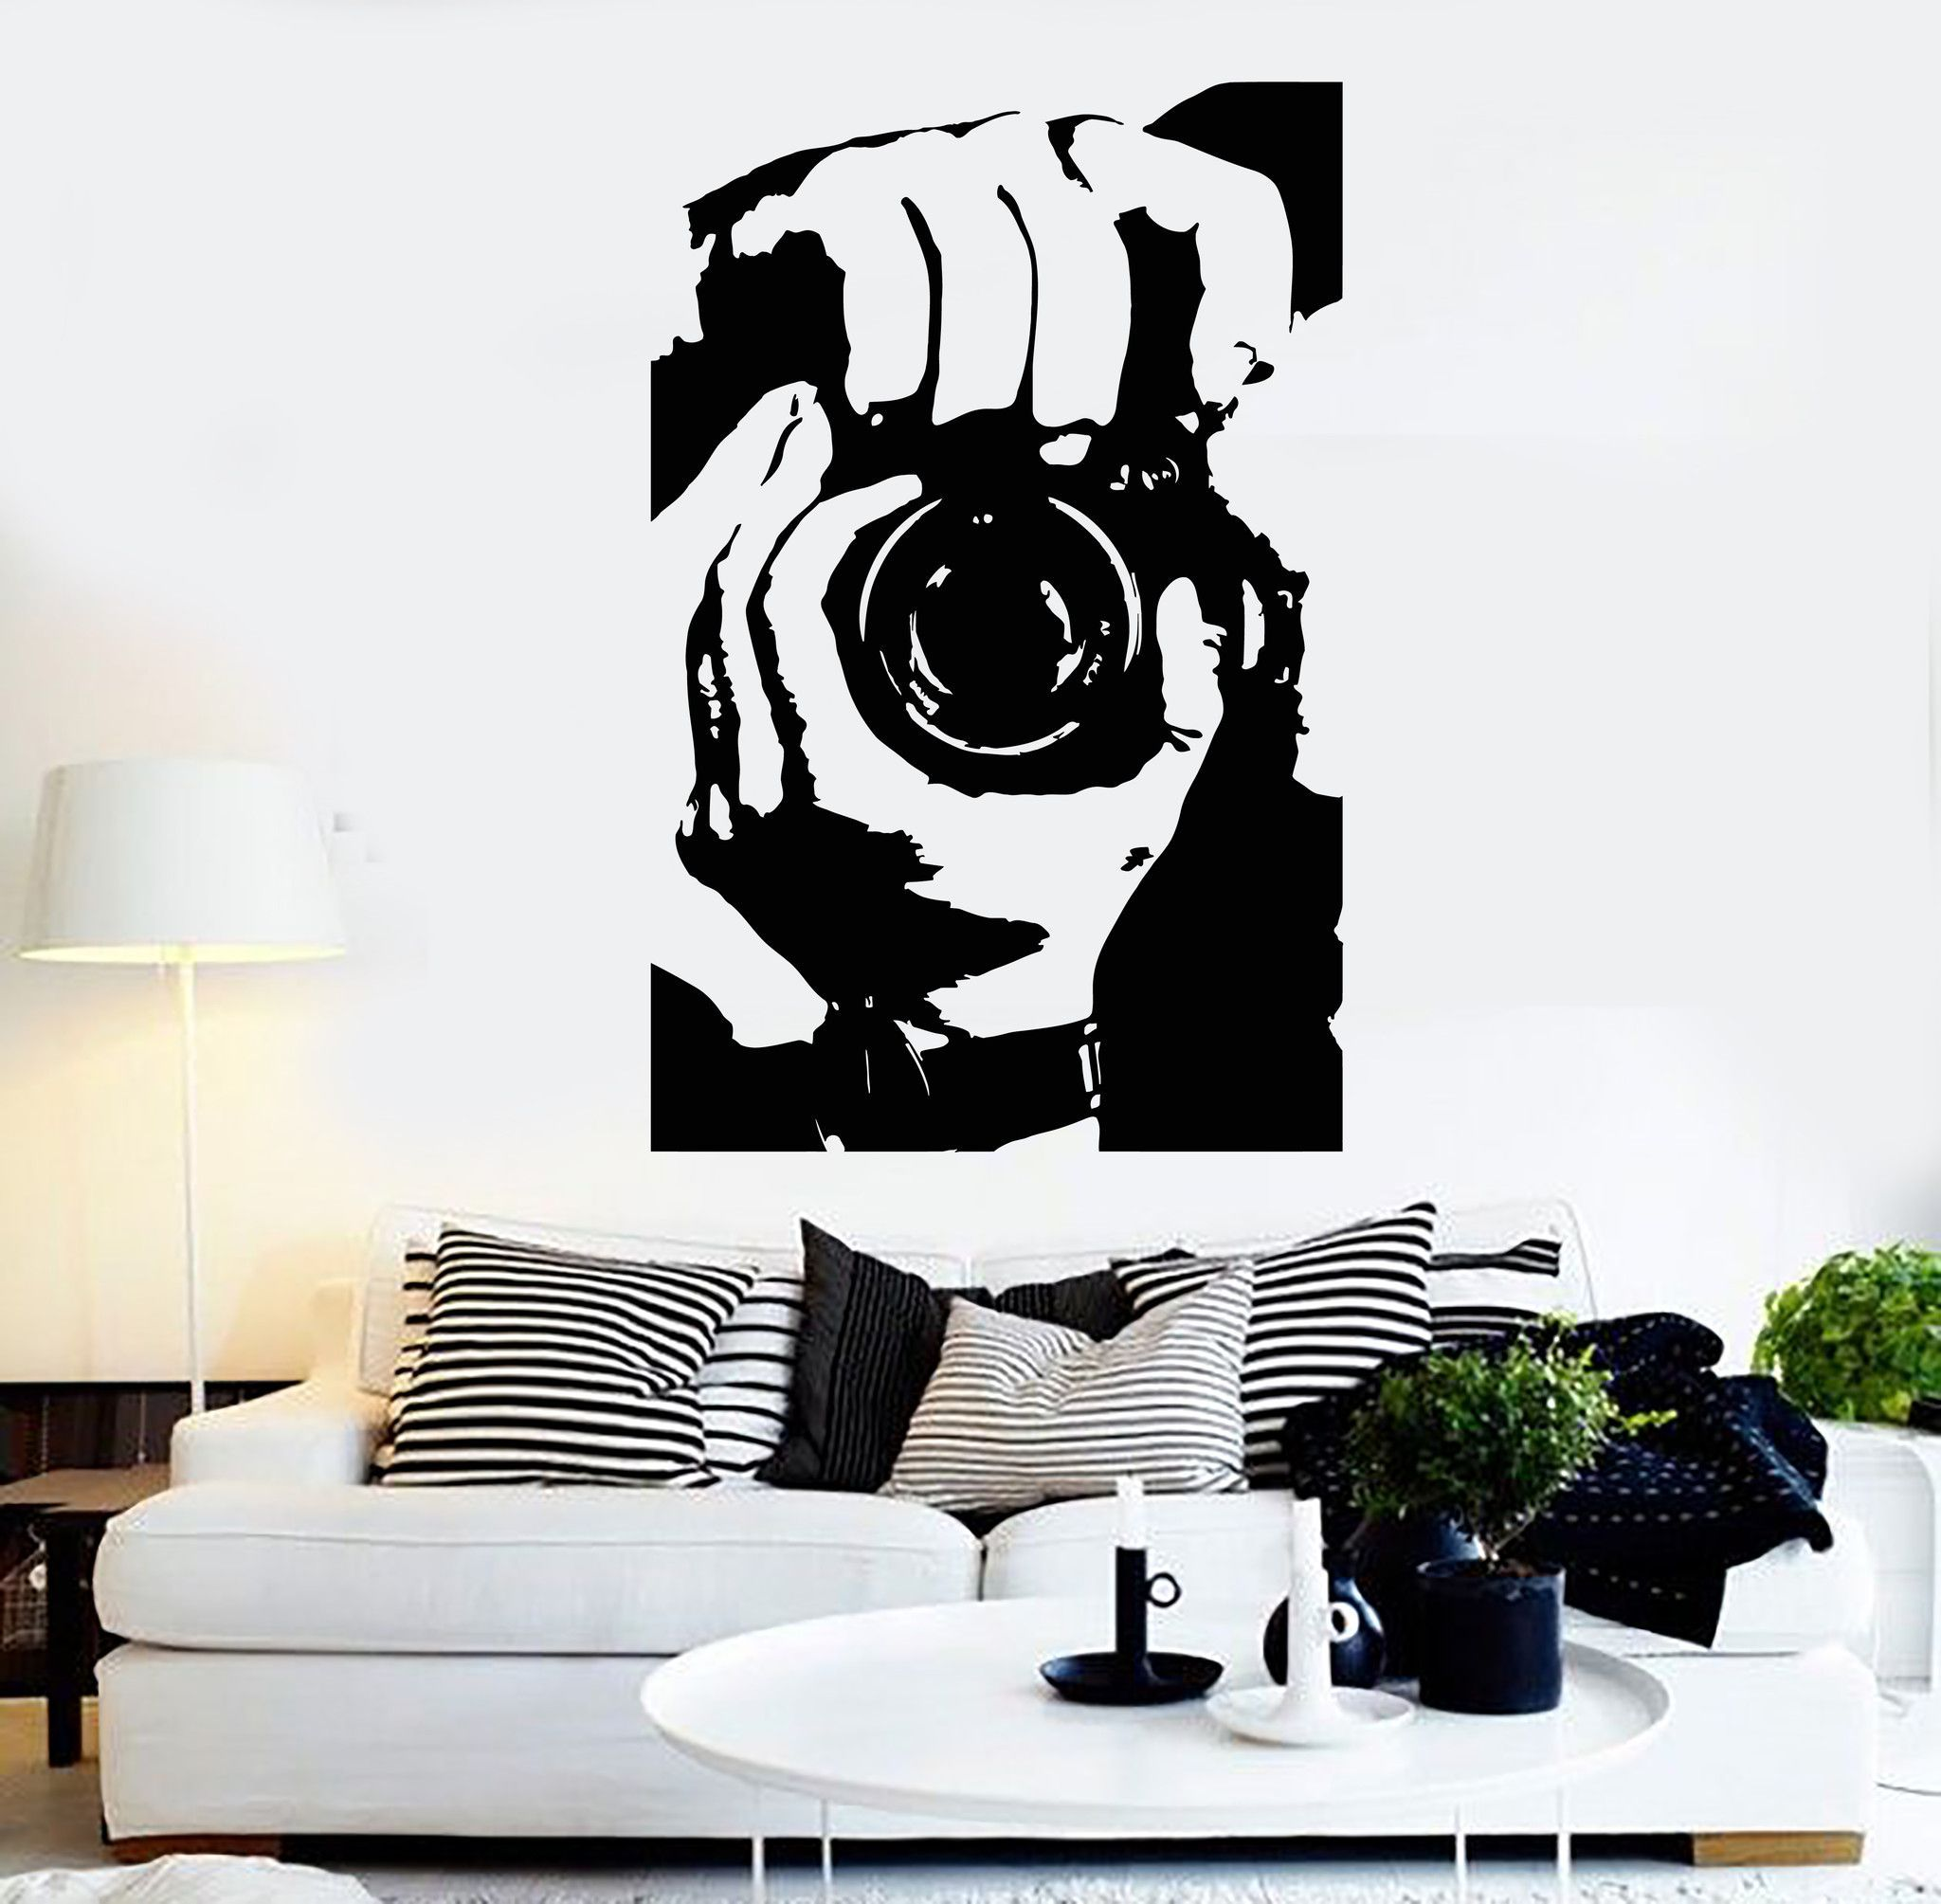 Vinyl Wall Decal Photographer Photo Studio Camera Stickers Mural ...